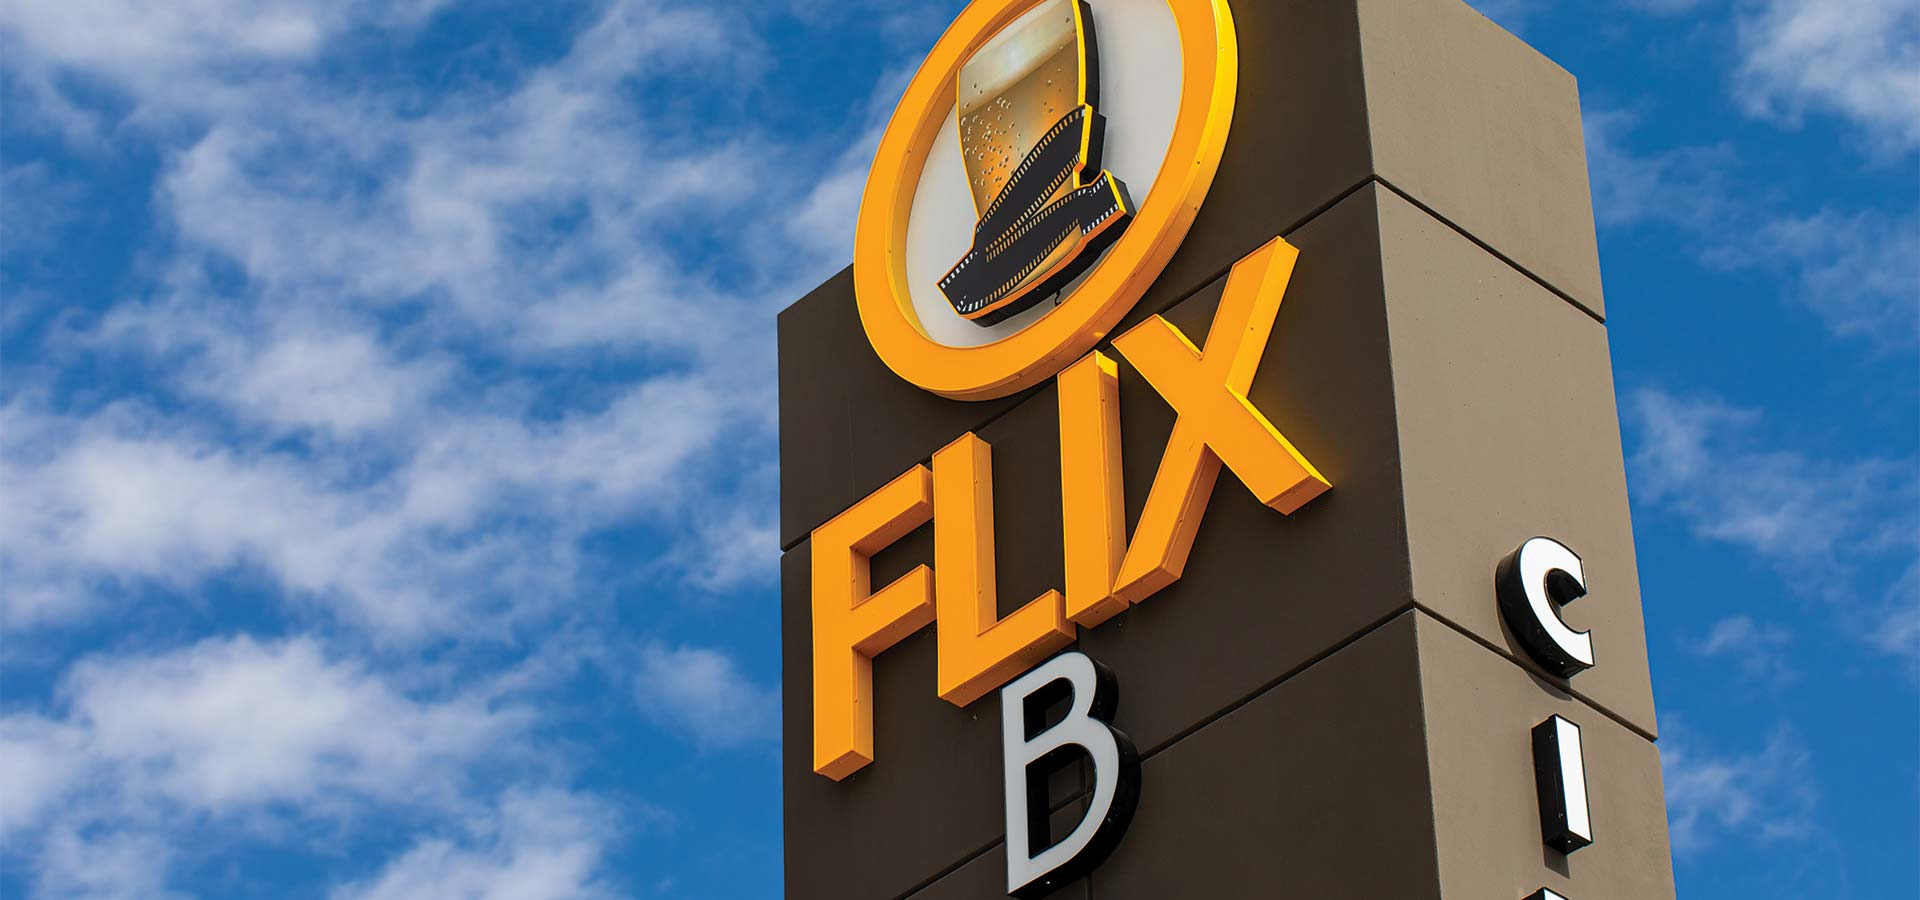 Flix Brewhouse, Oklahoma City